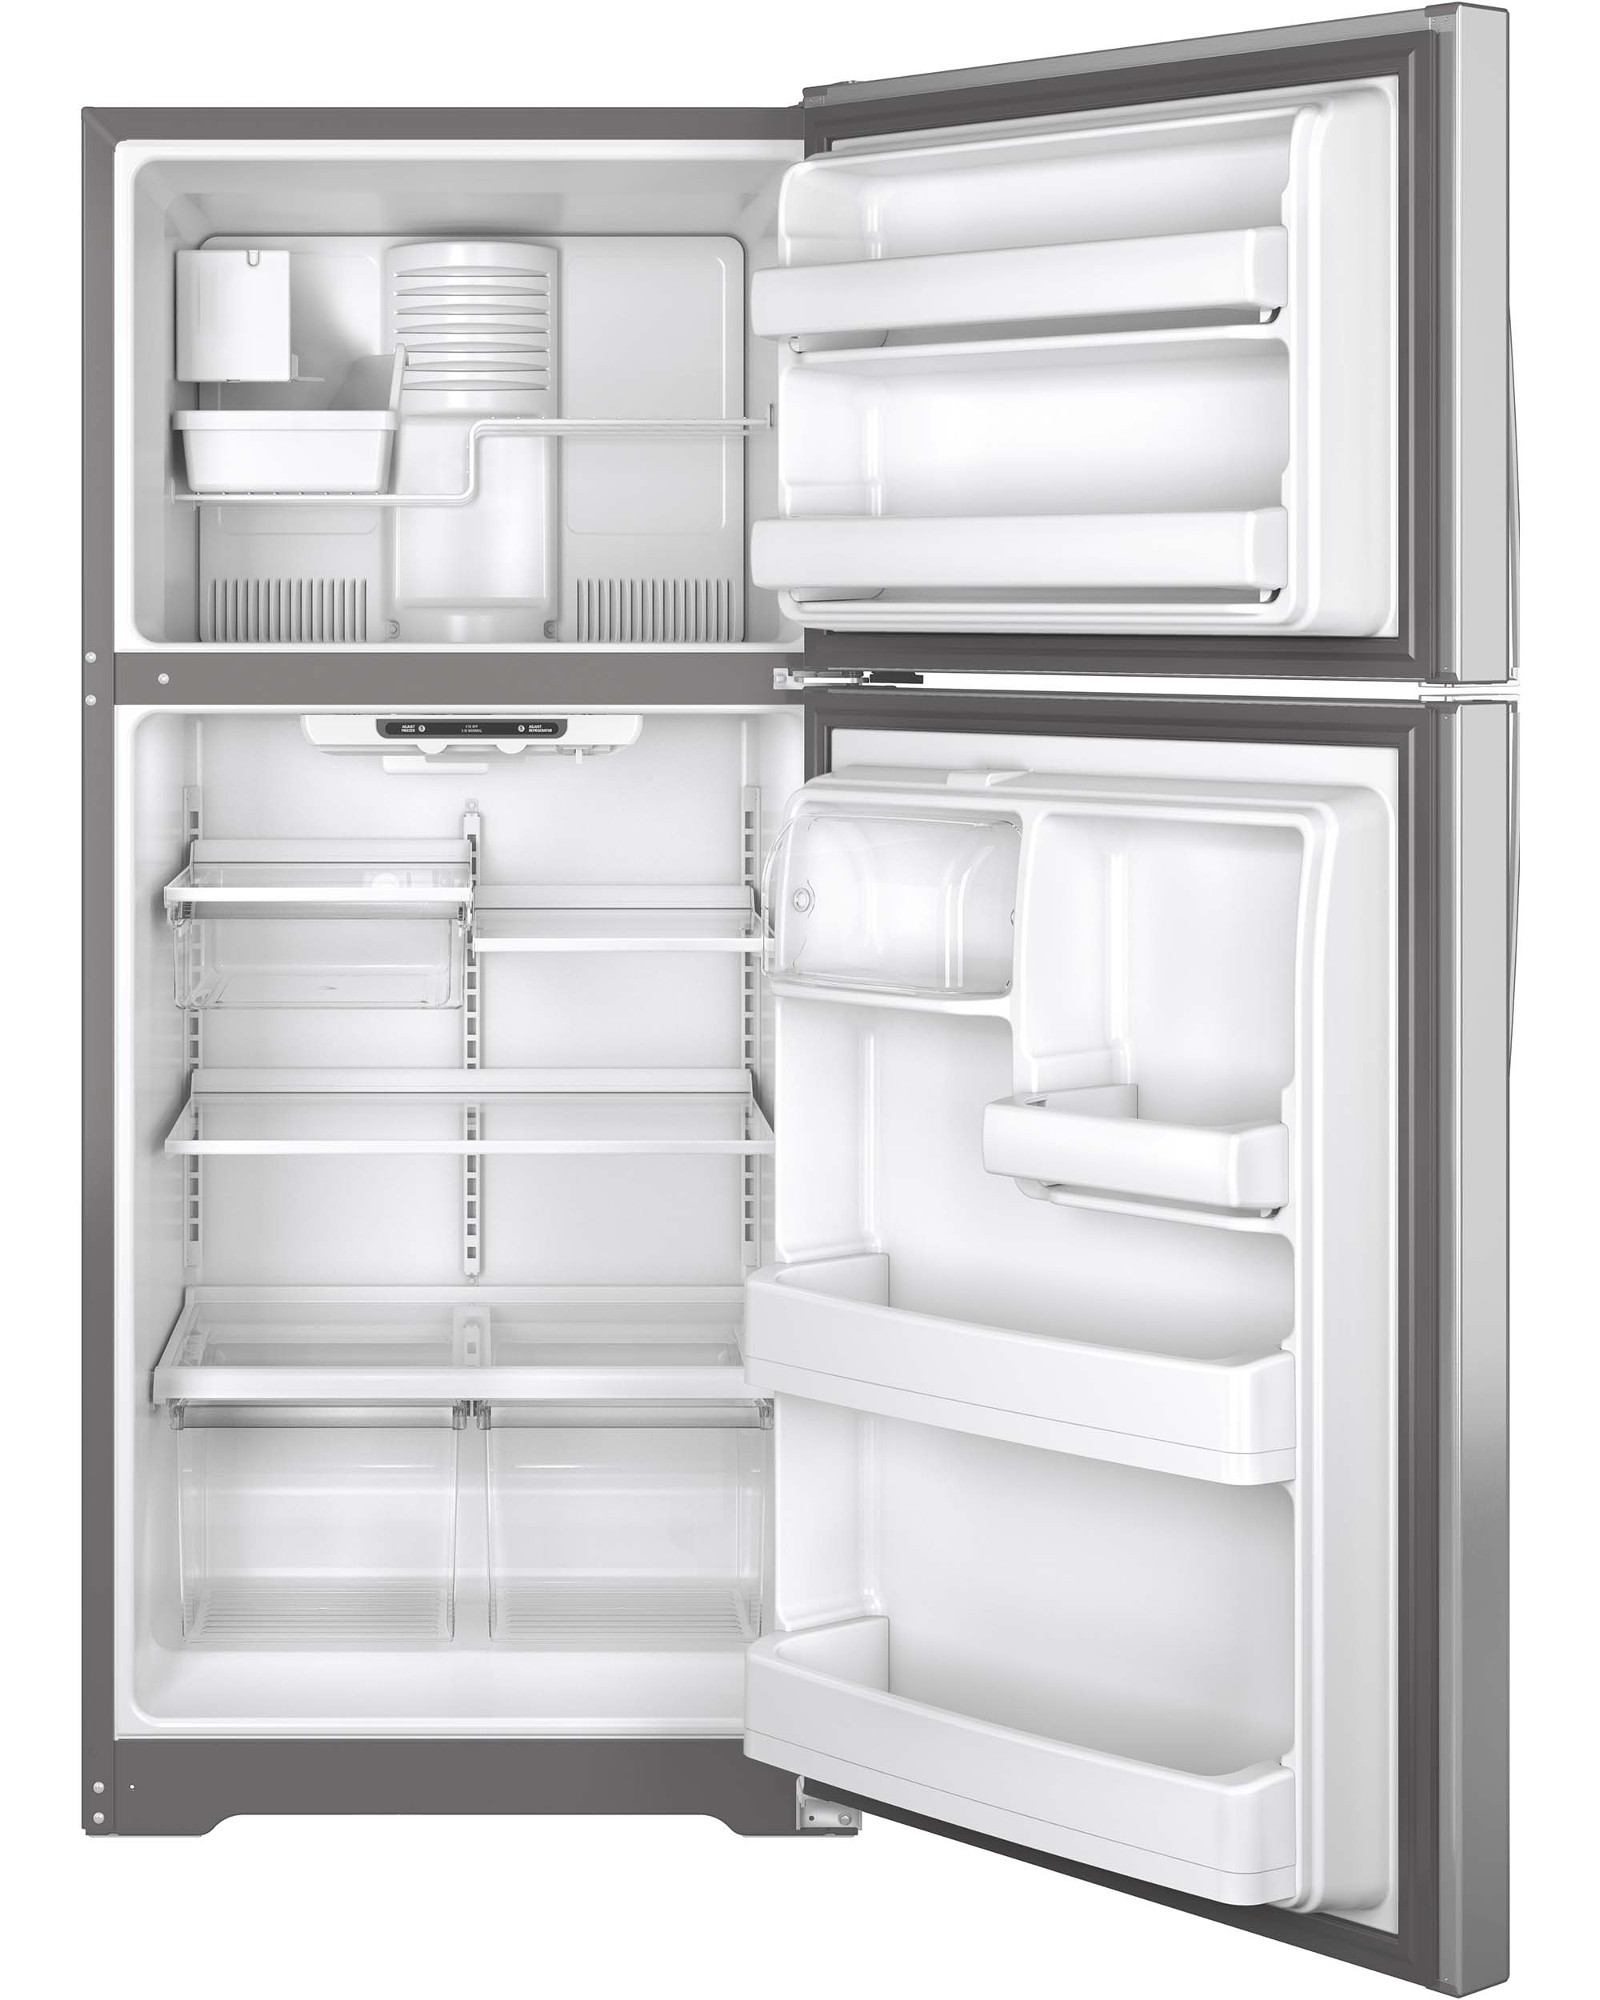 GE Appliances GIE18ISHSS 18.2 cu. ft. Top-Freezer Refrigerator - Stainless Steel